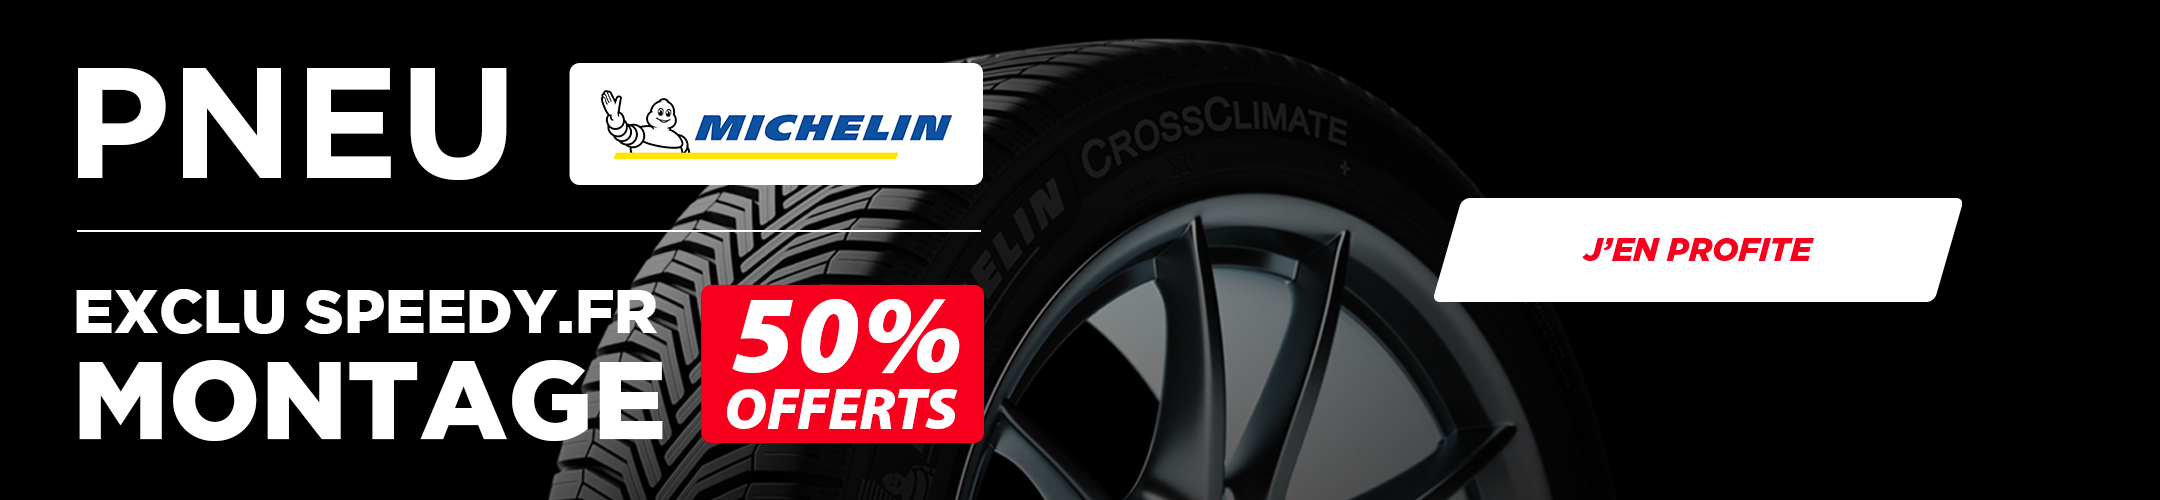 Pneu Michelin Exclu Web  50 pourcents Montage